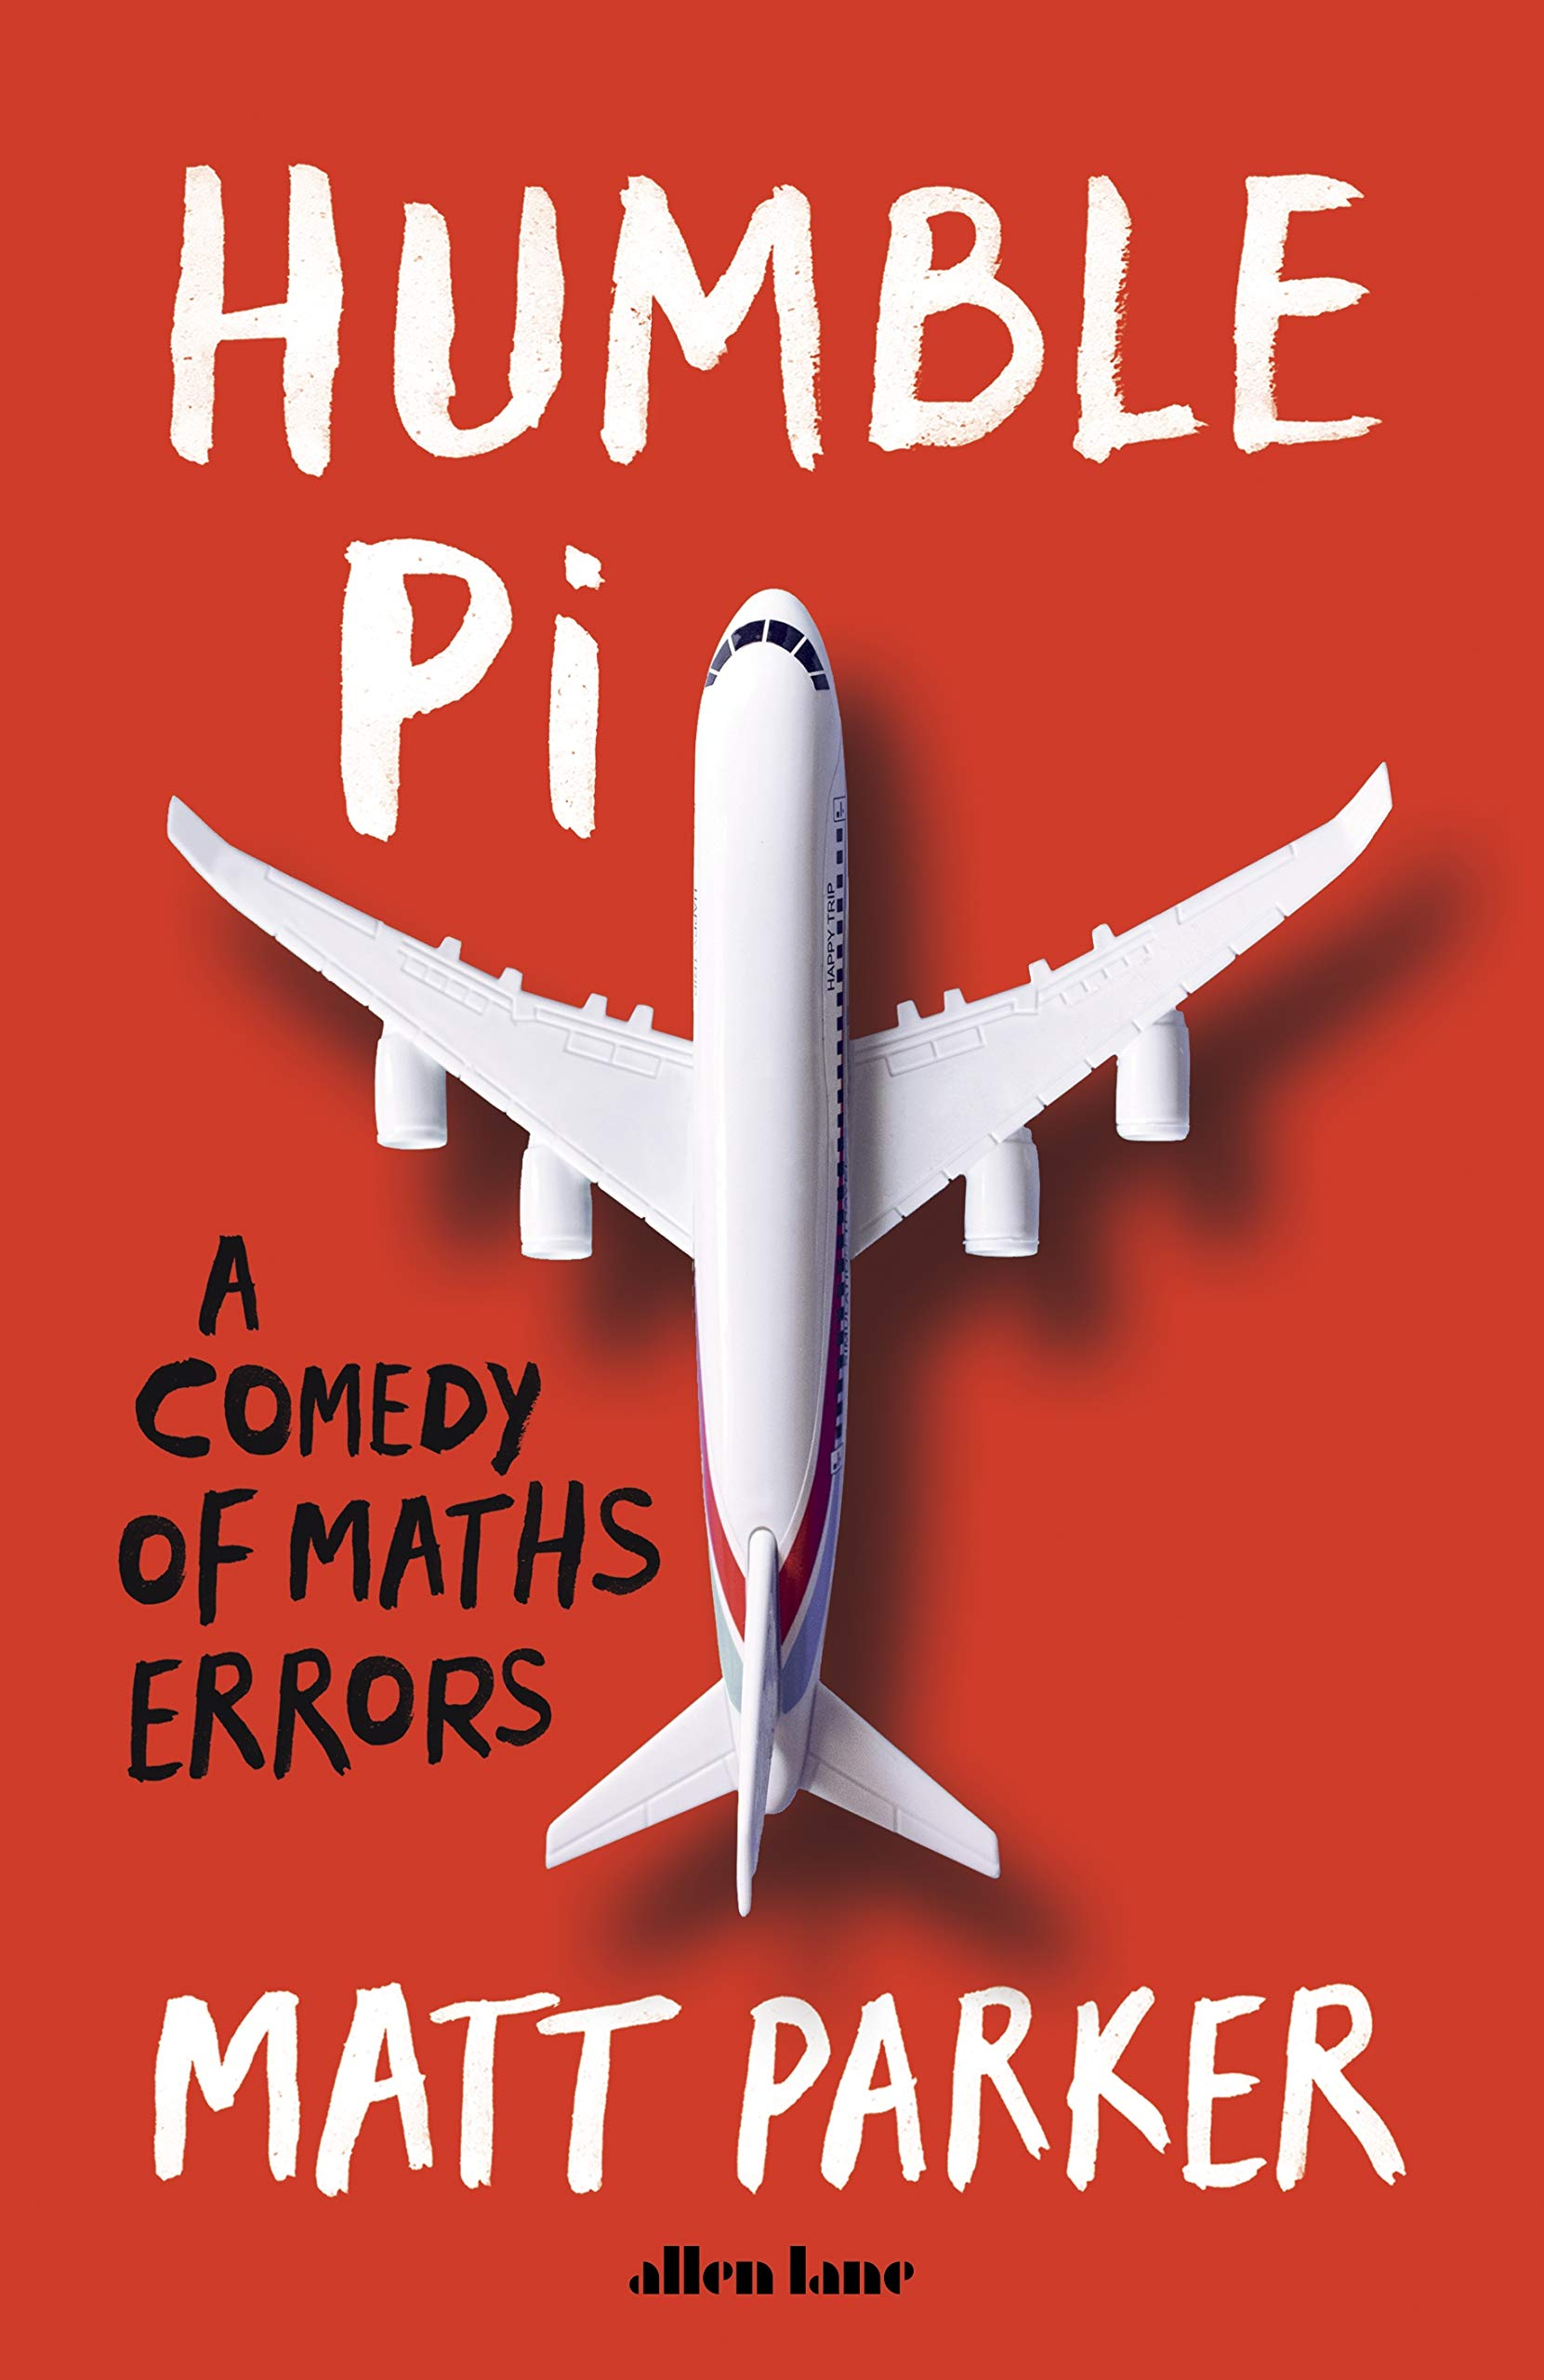 Humble Pi: A Comedy of Maths Errors: Amazon.co.uk: Parker, Matt:  9780241360231: Books